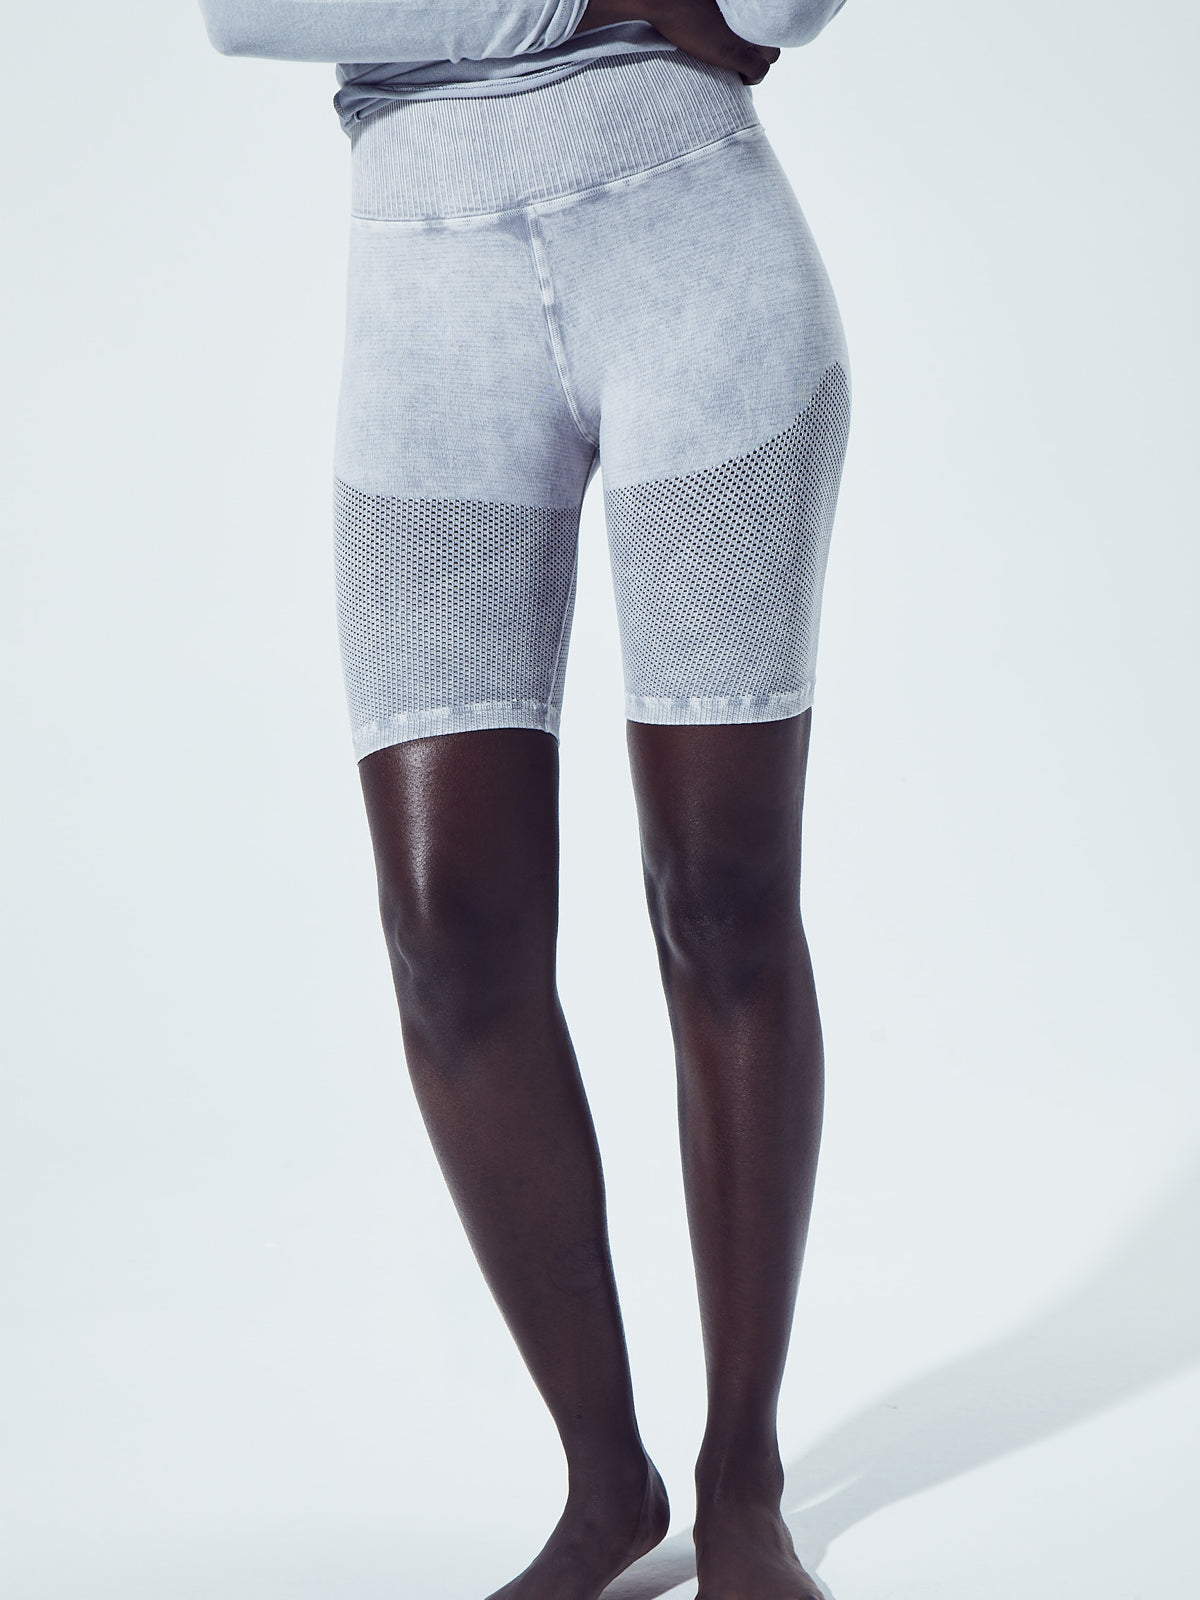 Mesh Biker Shorts in Vintage Cool Grey